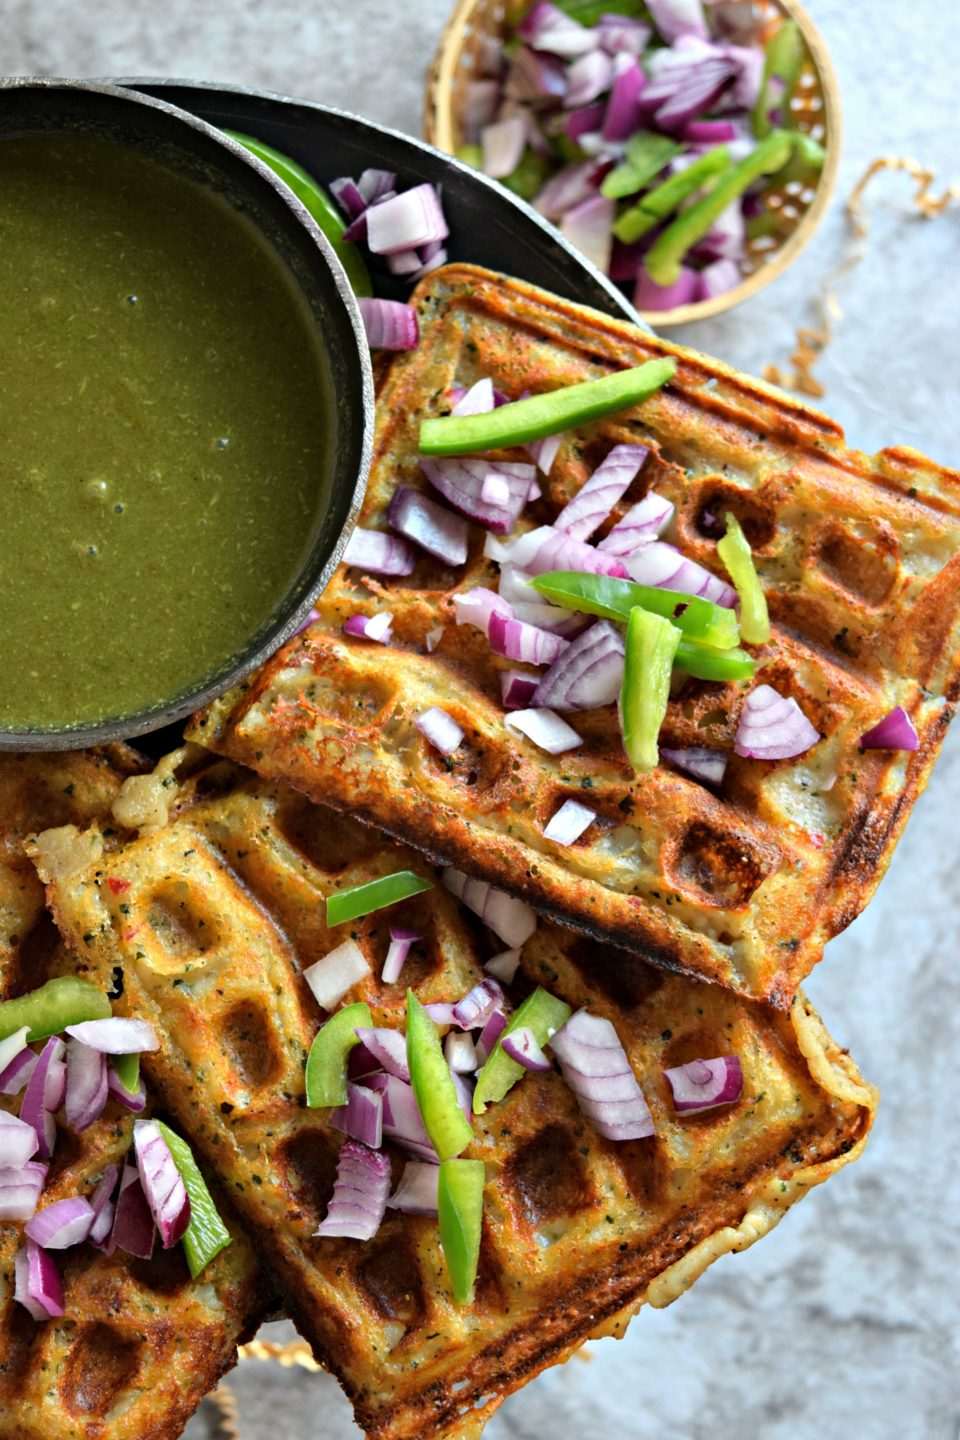 Hummus Flavored Mashed Potato Waffles for Breakfast!Appetizers & Snacks Power Breakfasts